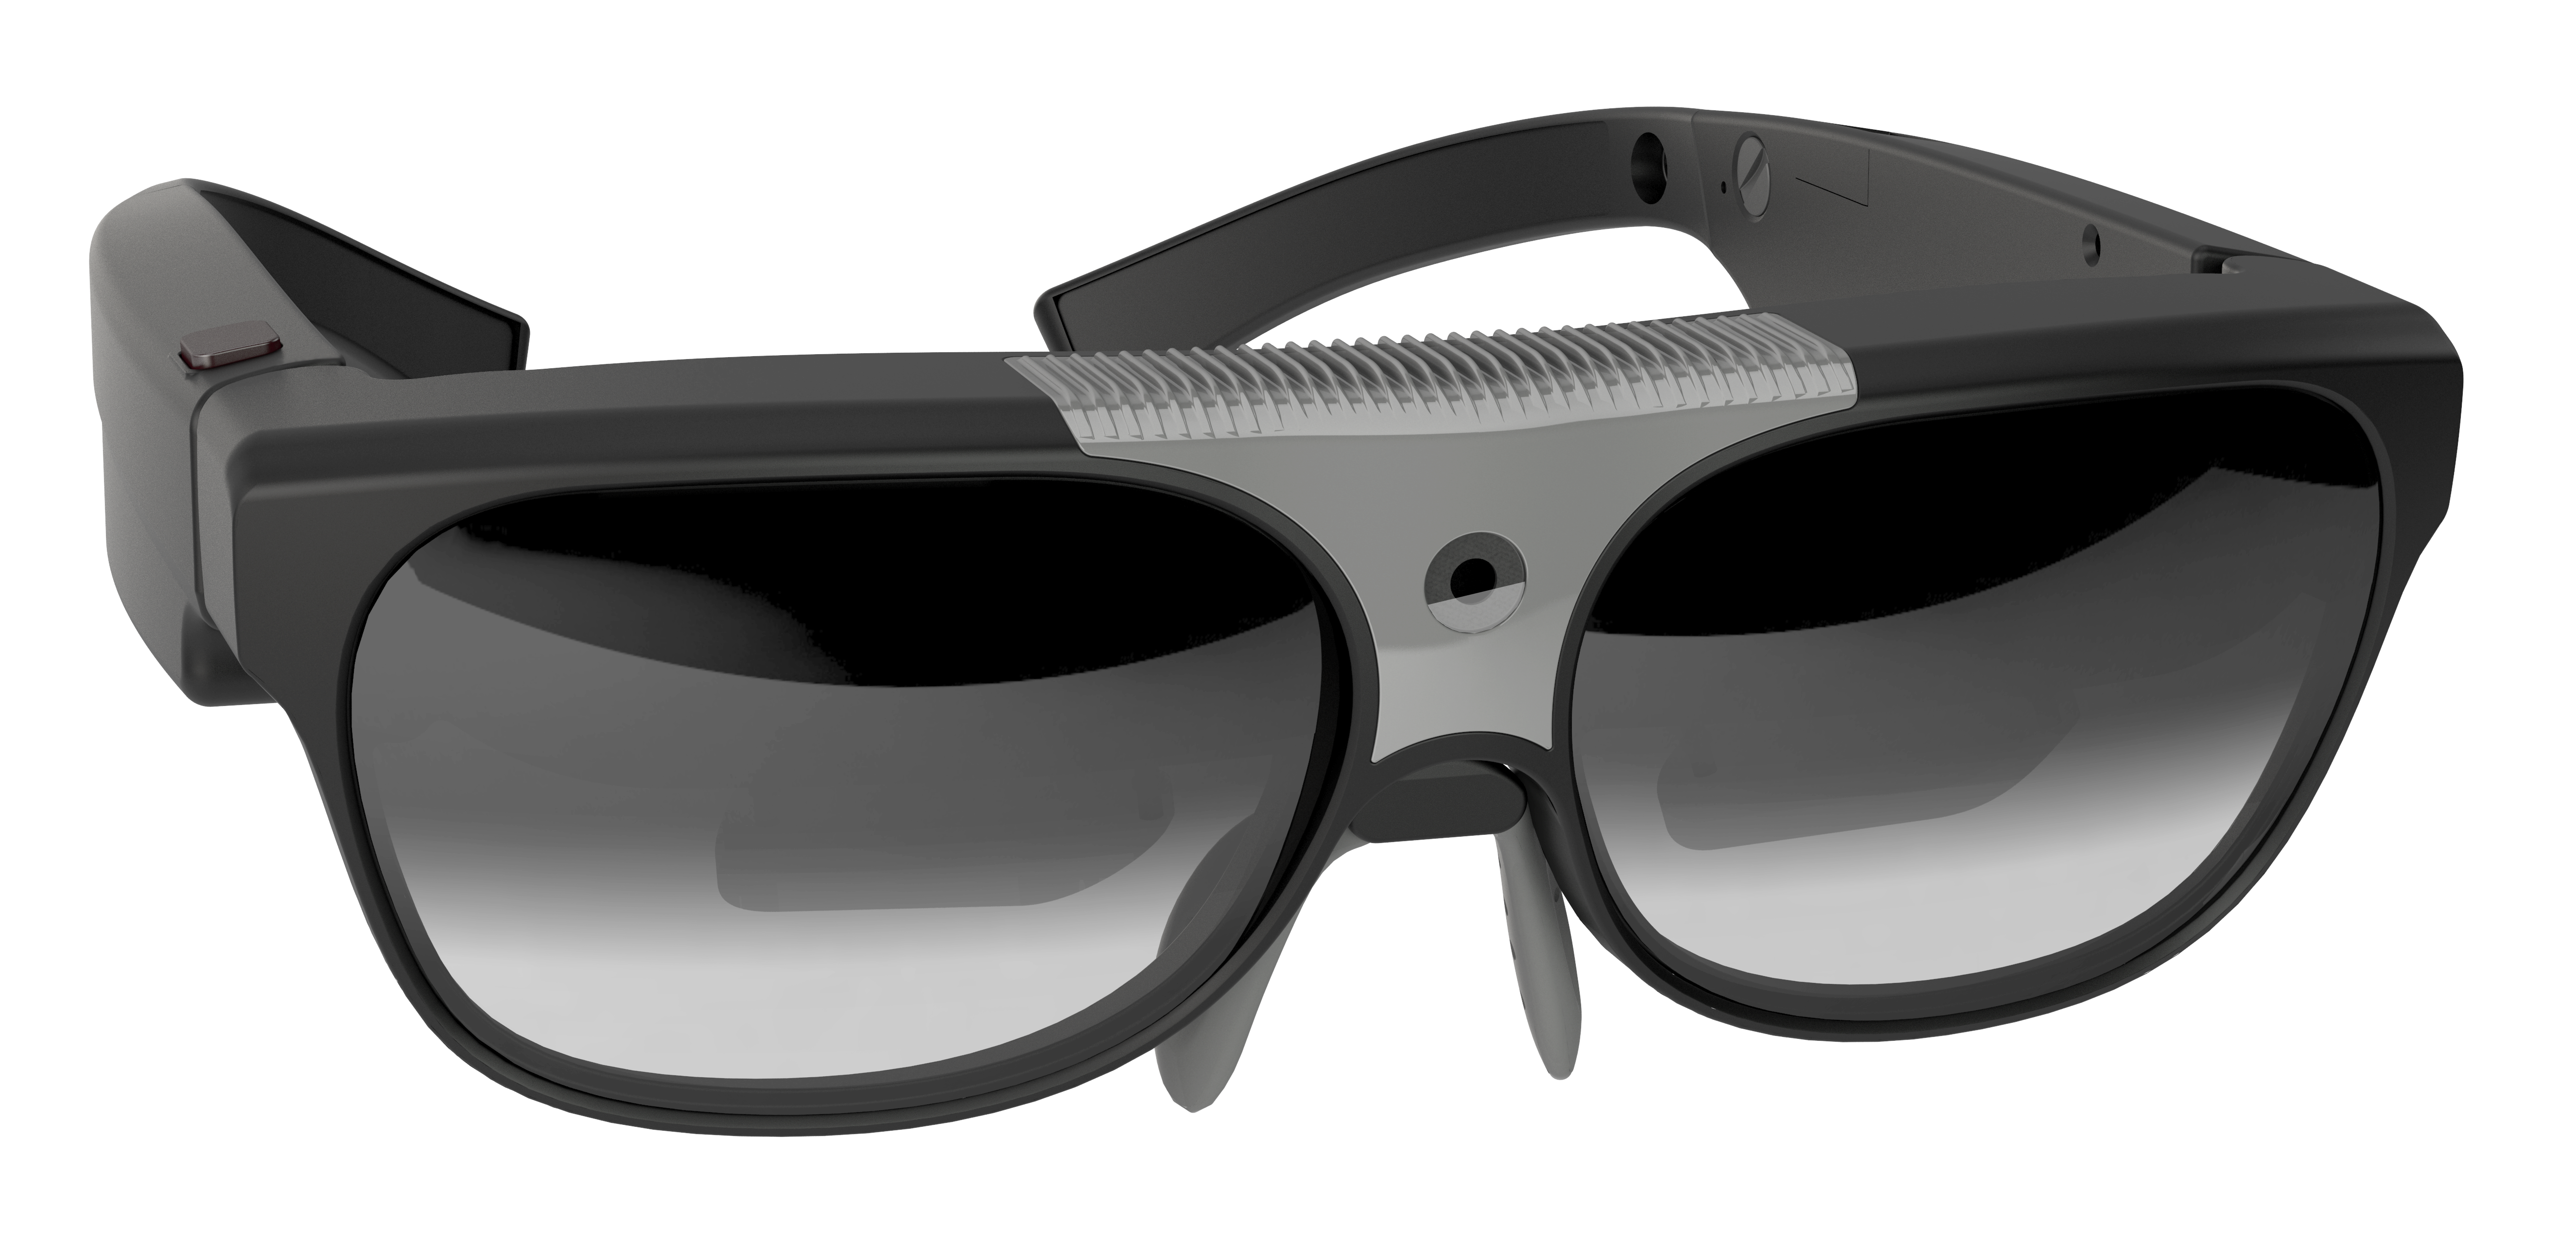 5a0eb7a3e4c55 ODG R9 - ODG s R9 Smart glasses (Augmented Reality glasses) are sleek